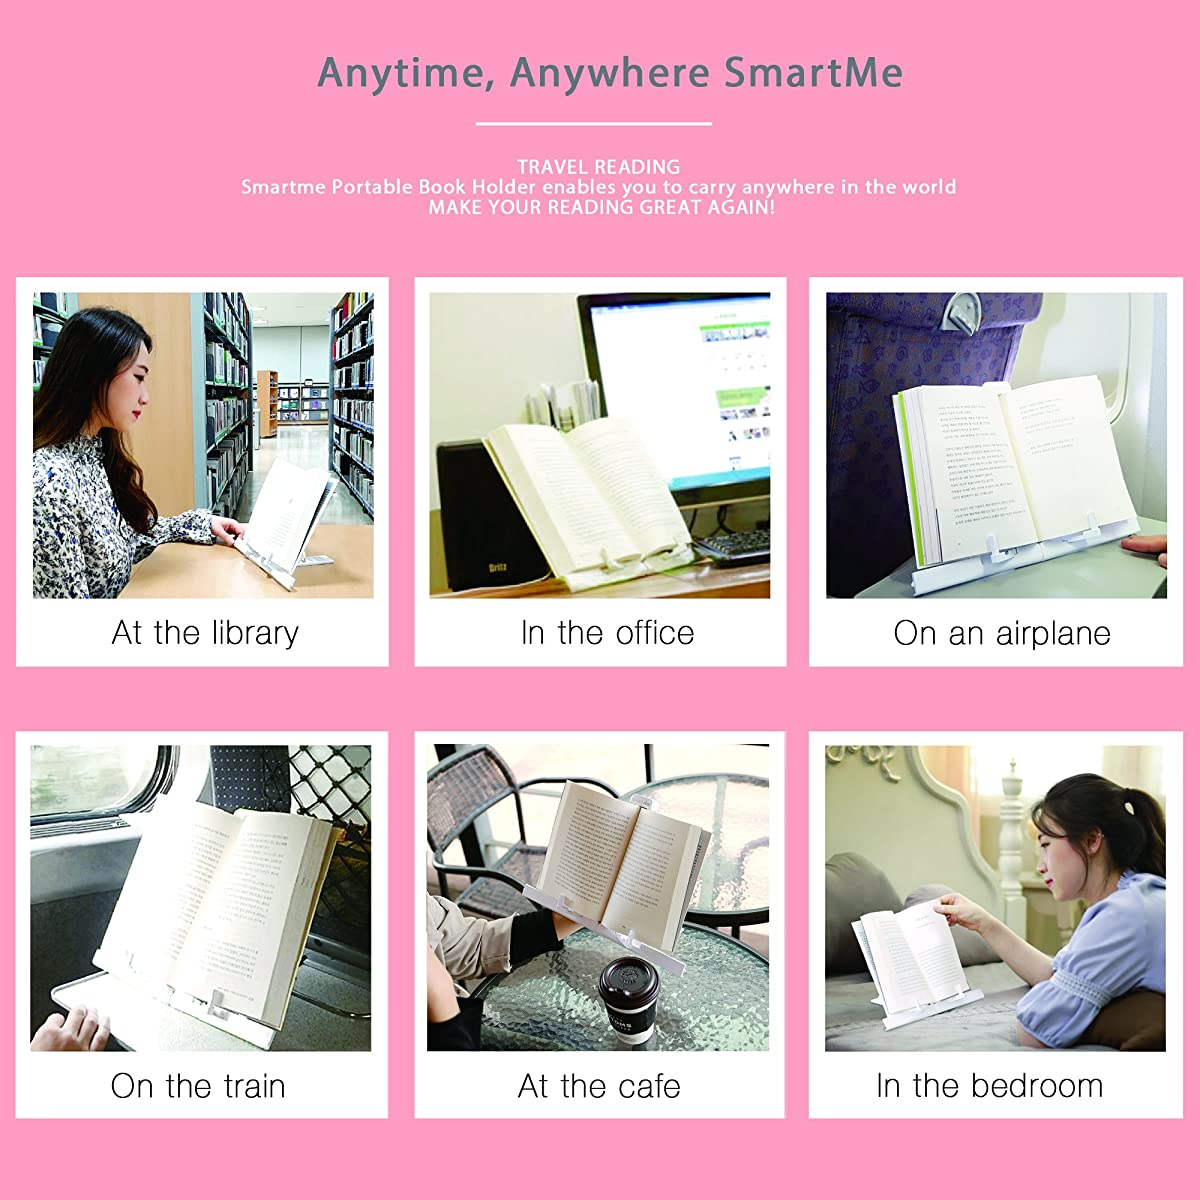 [SmartMe] Portable Book Stand Ultra-Light Weight 0.33lb Transformer Book Holder, Angle Adjustable Smart Pad Mount, Reading Stand, Document Holder